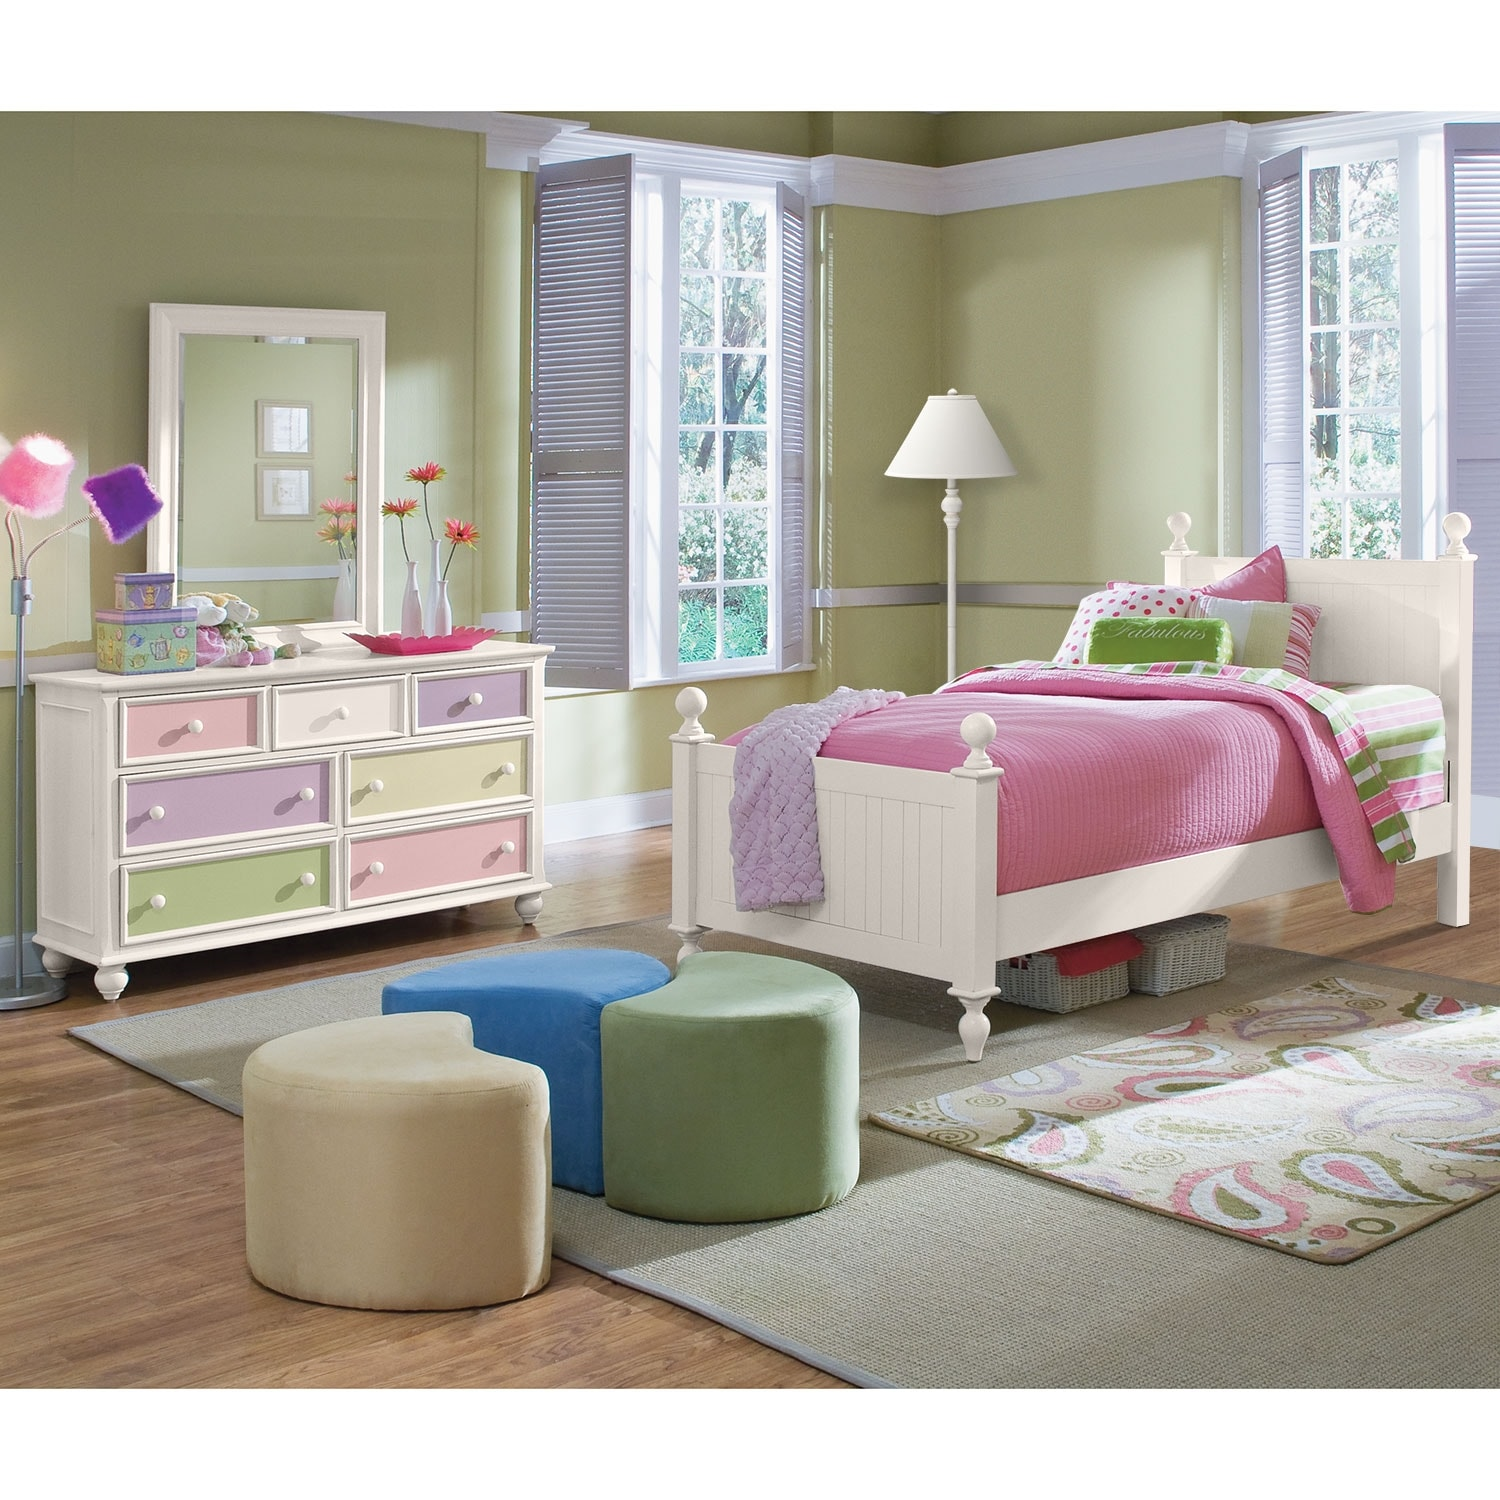 Colorworks 5 piece twin bedroom set white value city - Value city furniture bedroom sets ...